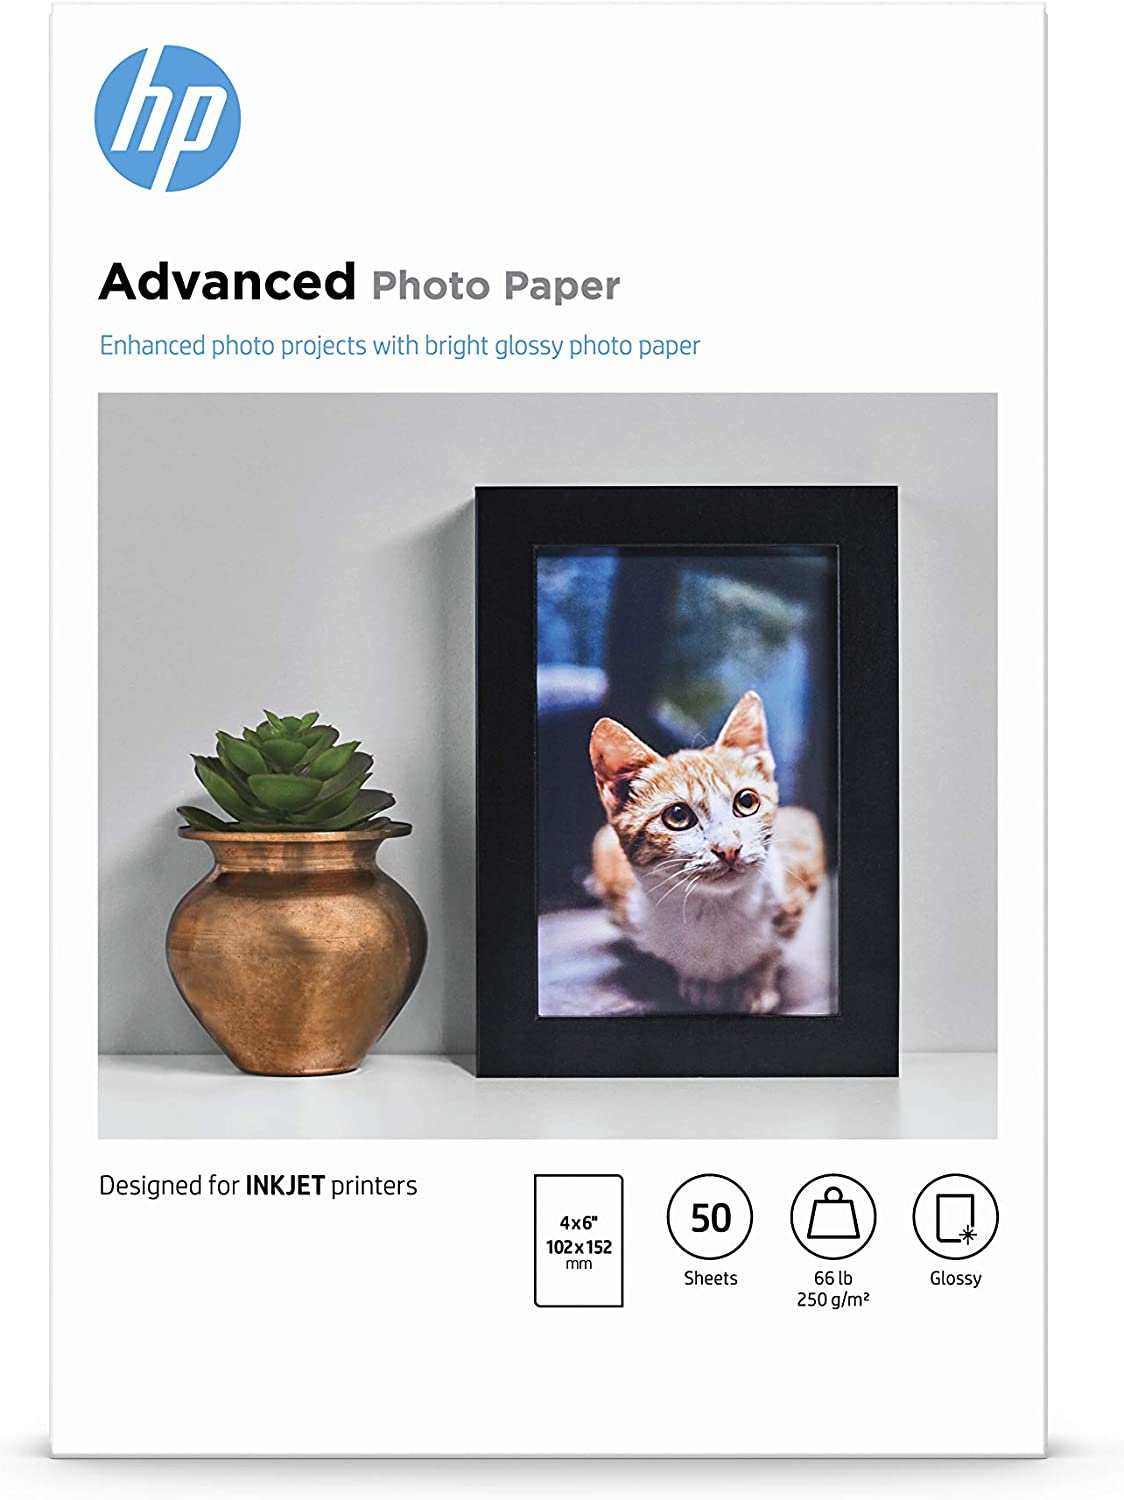 HP Advanced Photo Paper | Glossy | 4x6 | 50 Sheets